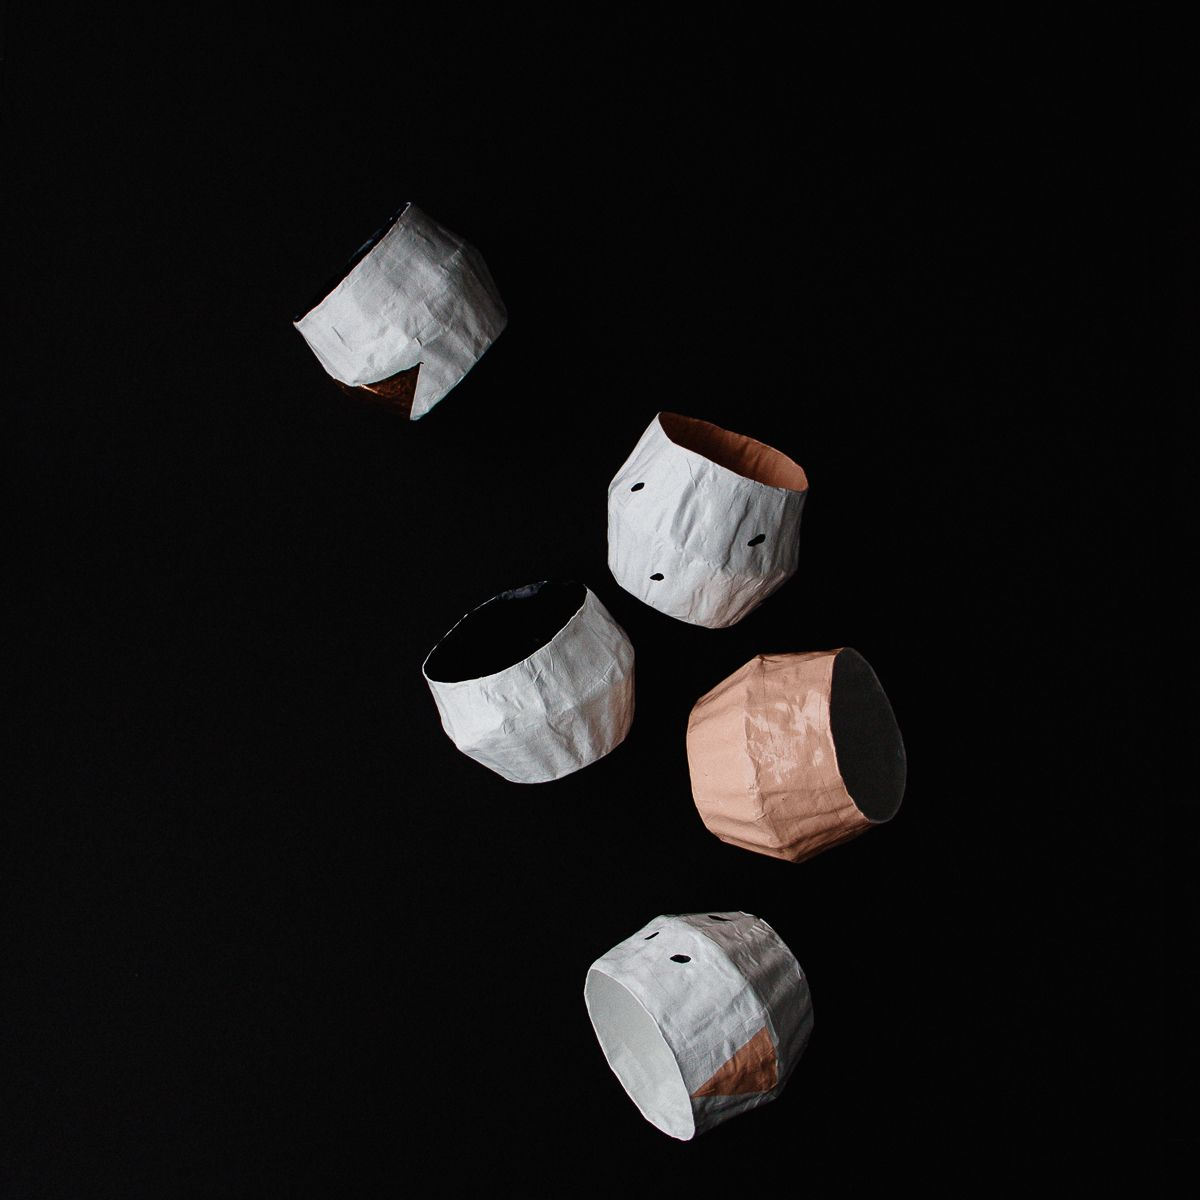 Small Paper Mache Pots. Simple, sleek and graphic, with a Scandinavian influence, these little pots of pastel colours are reminiscent of the 50s and 60s. Handmade in paper mache, lightweight and environmentally friendly, they are perfect to dress up your little plants, cactus or succulents.